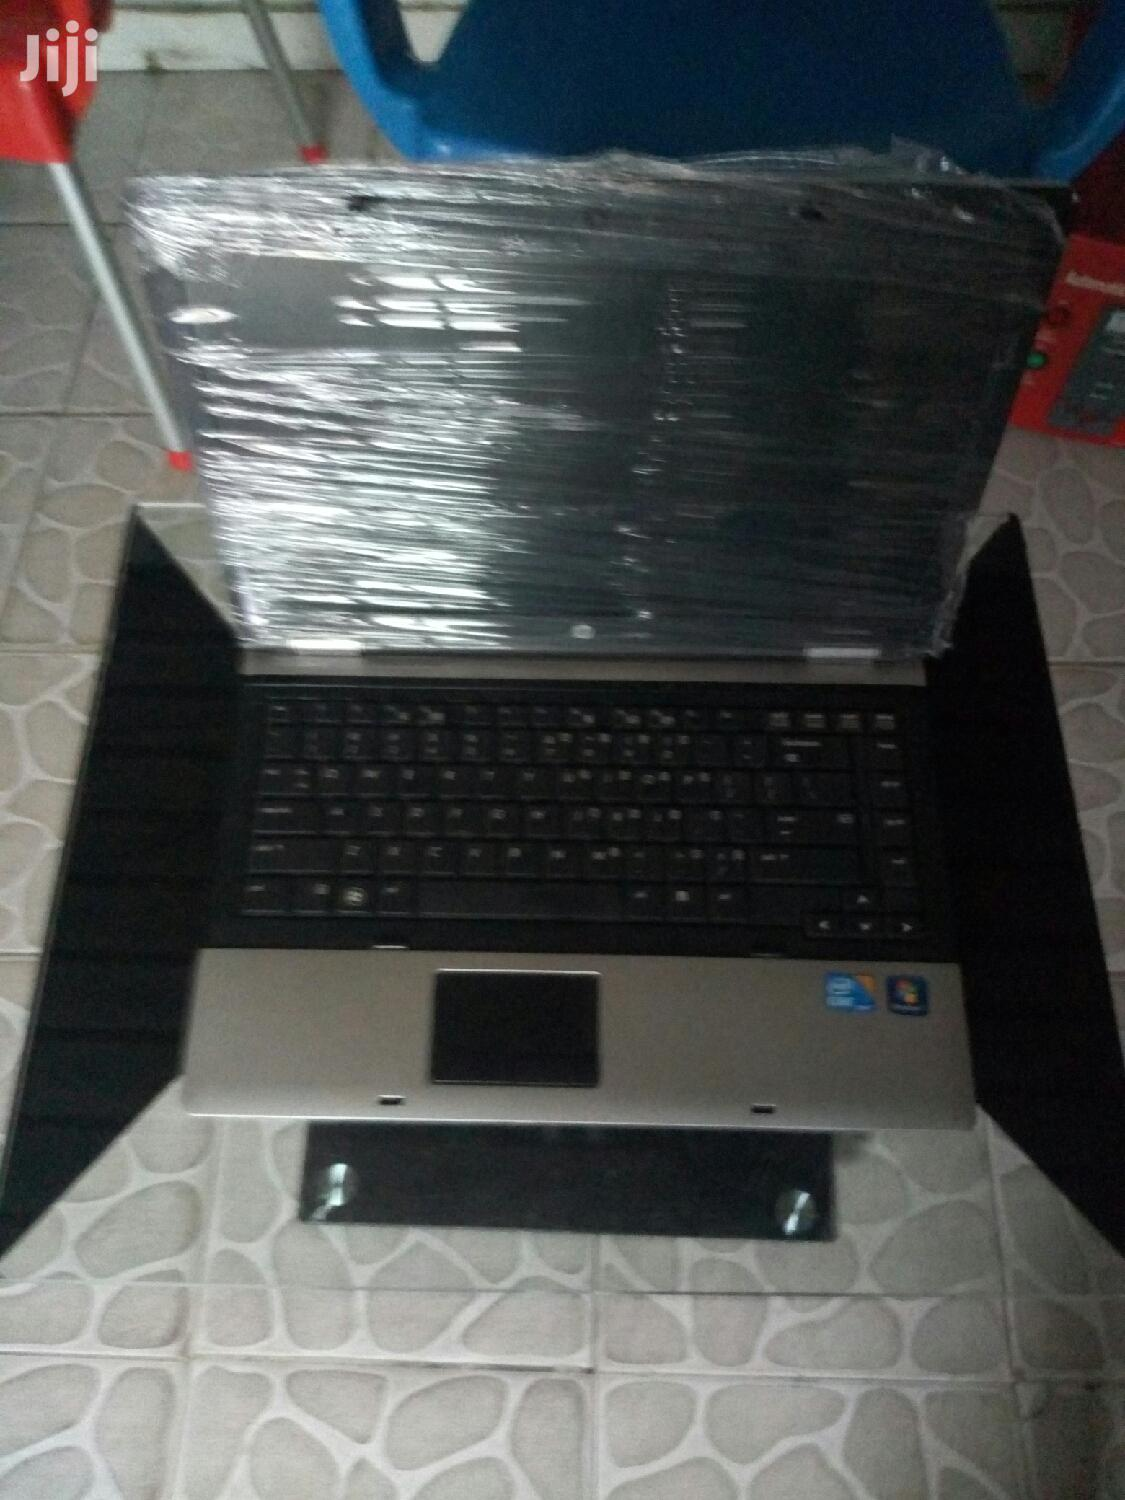 Laptop HP 655 2GB Intel Core 2 Duo HDD 250GB   Laptops & Computers for sale in Port-Harcourt, Rivers State, Nigeria